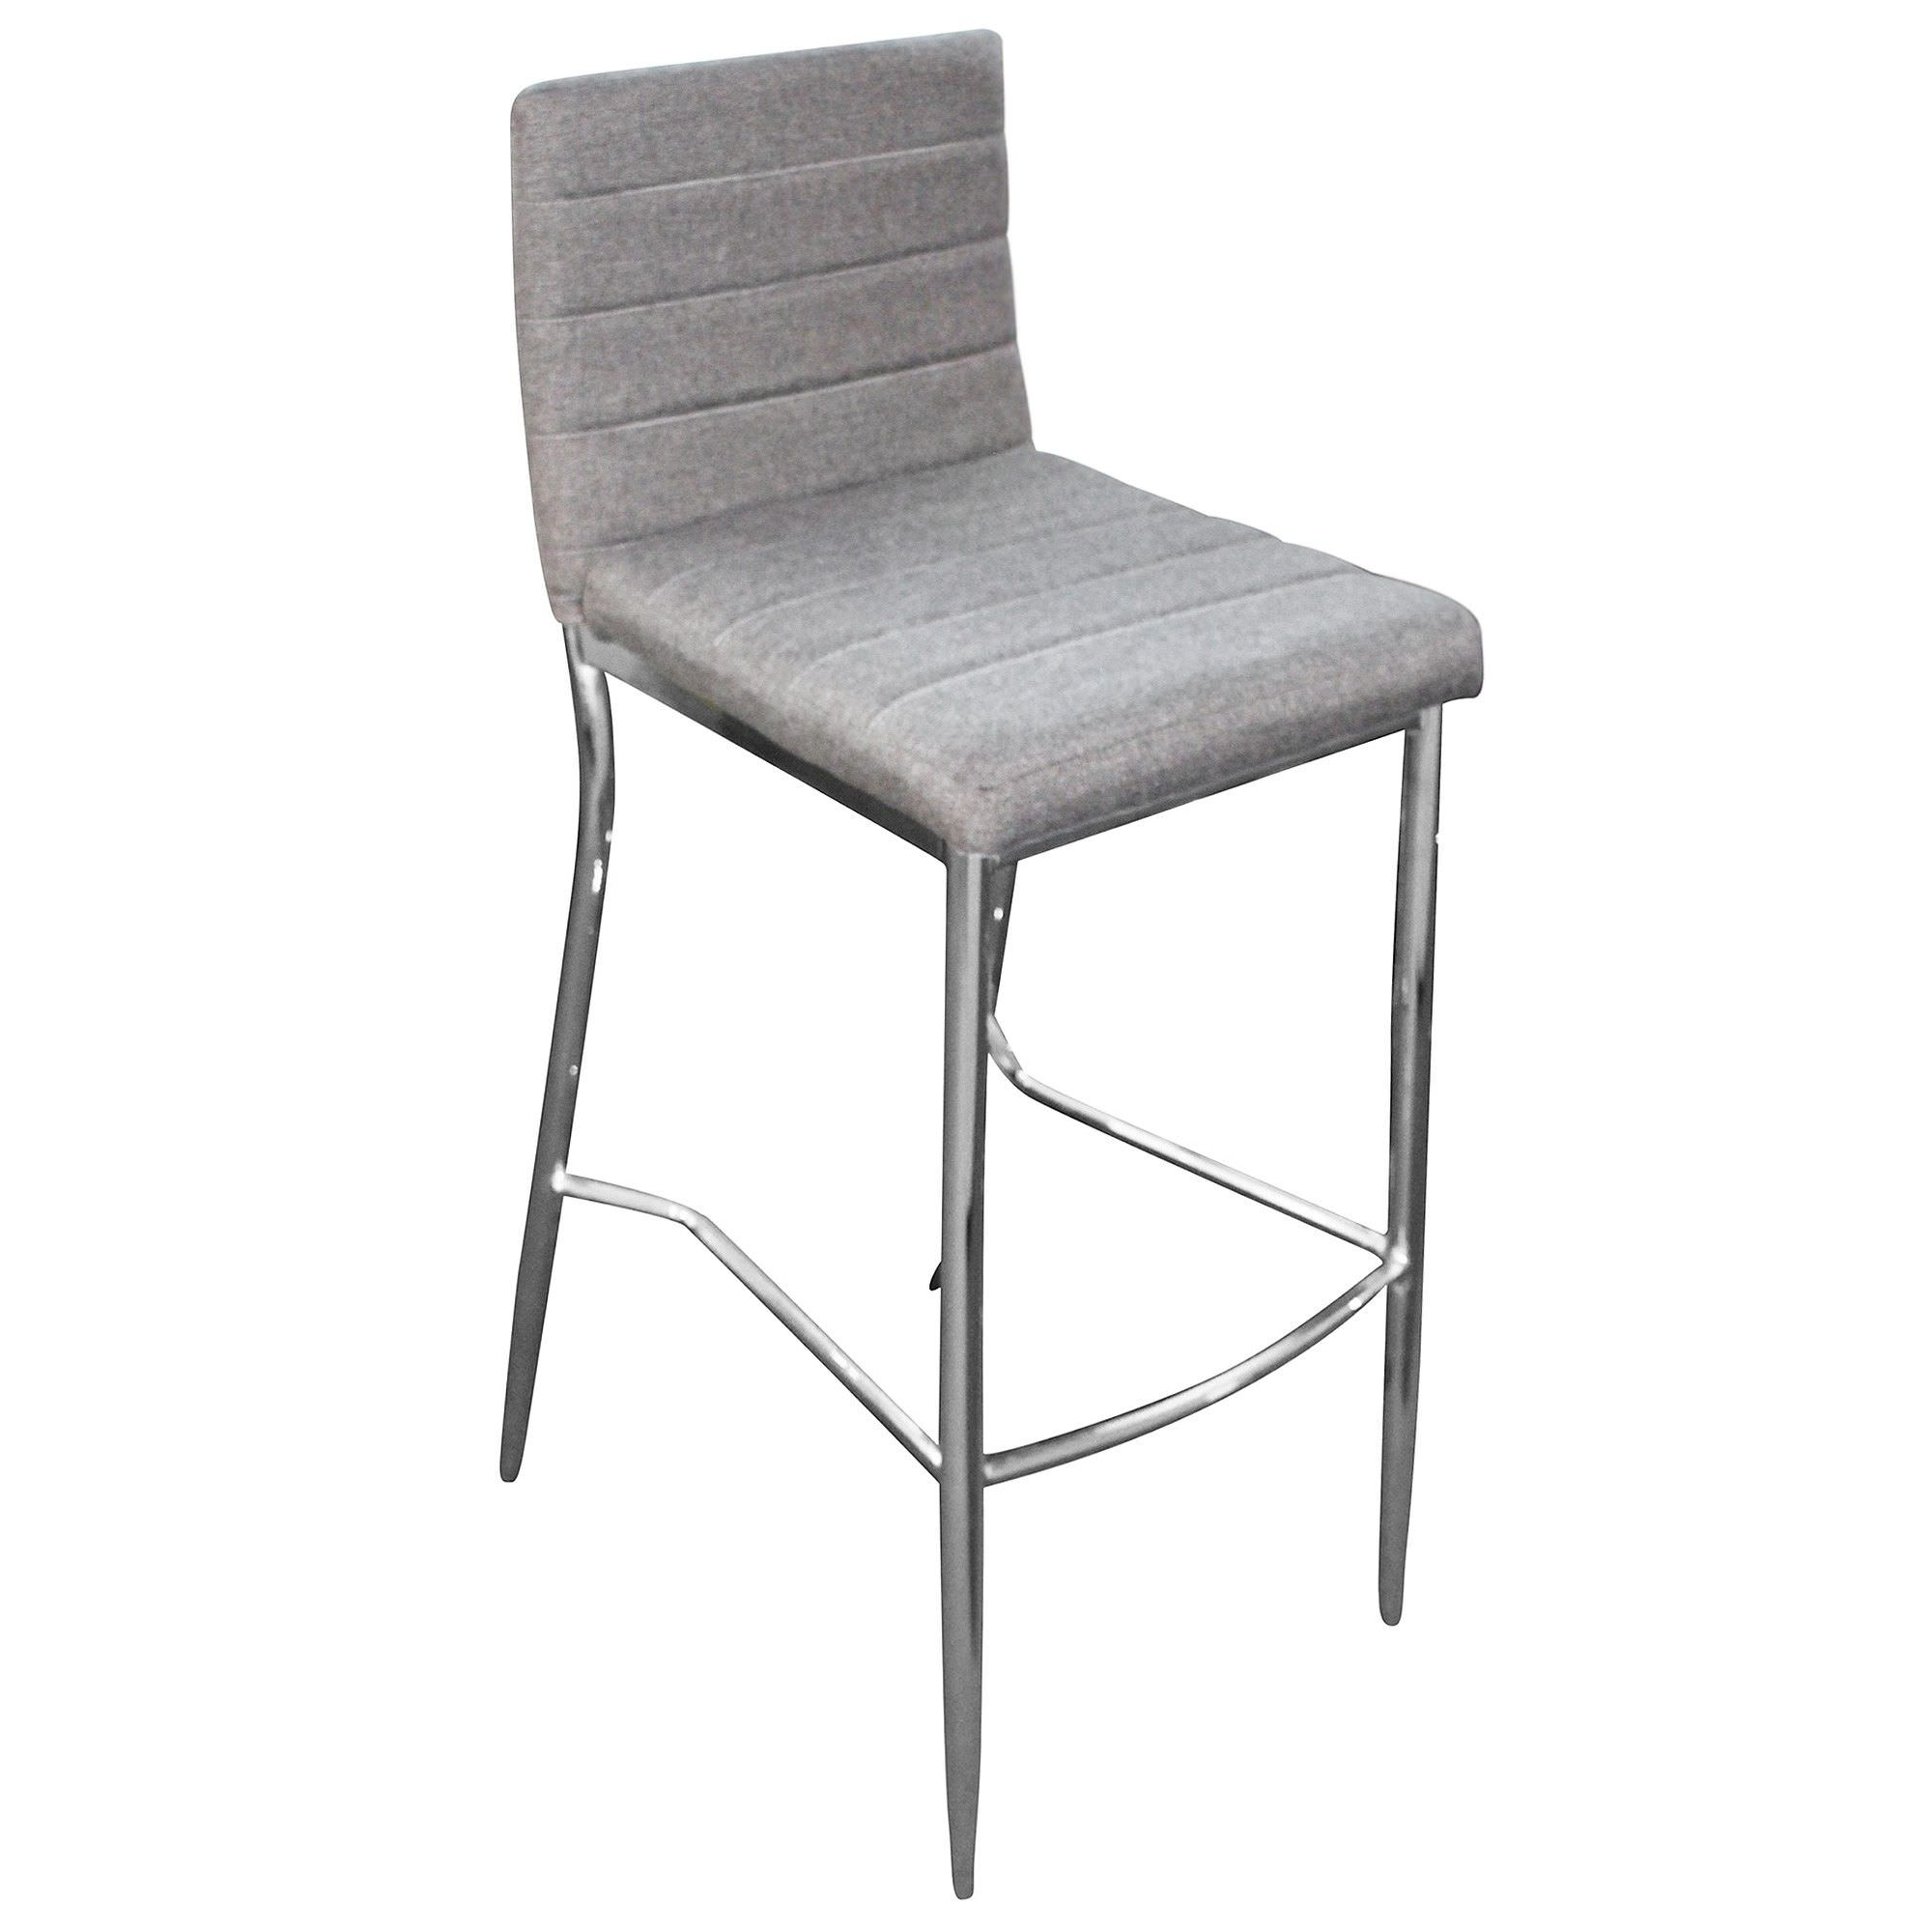 in red dark furniture size bar of cheap high counter carmel can tufted with medium full yellow beautiful nailhead blue stools hardwood upholstered gray where restoration leather i pictures and wooden chairs modern barstool graybar height hardware kitchen cream stool floor grey find metal